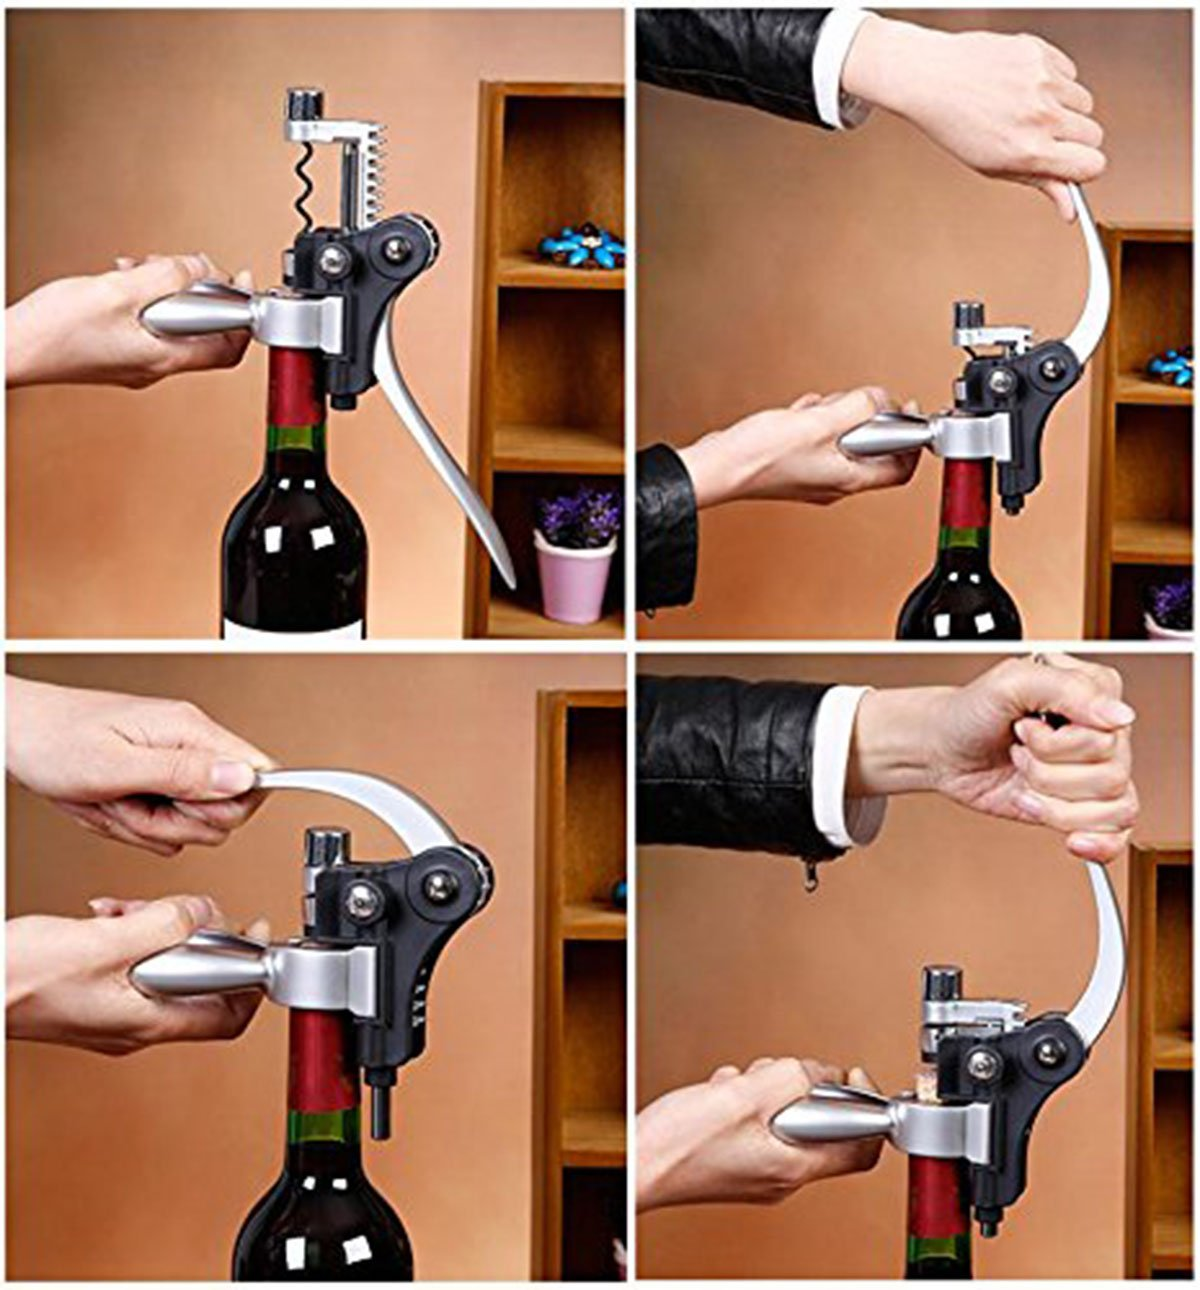 Watson Lee 9pcs Rabbit Wine Bottle Opener Corkscrew Accessories Set with Dark Cherry Wood Case, Unique Gift Idea For Women, Men, Anniversary, Birthday, Christmas, Couples, Friendship, Wine Gift by Watson Lee (Image #3)